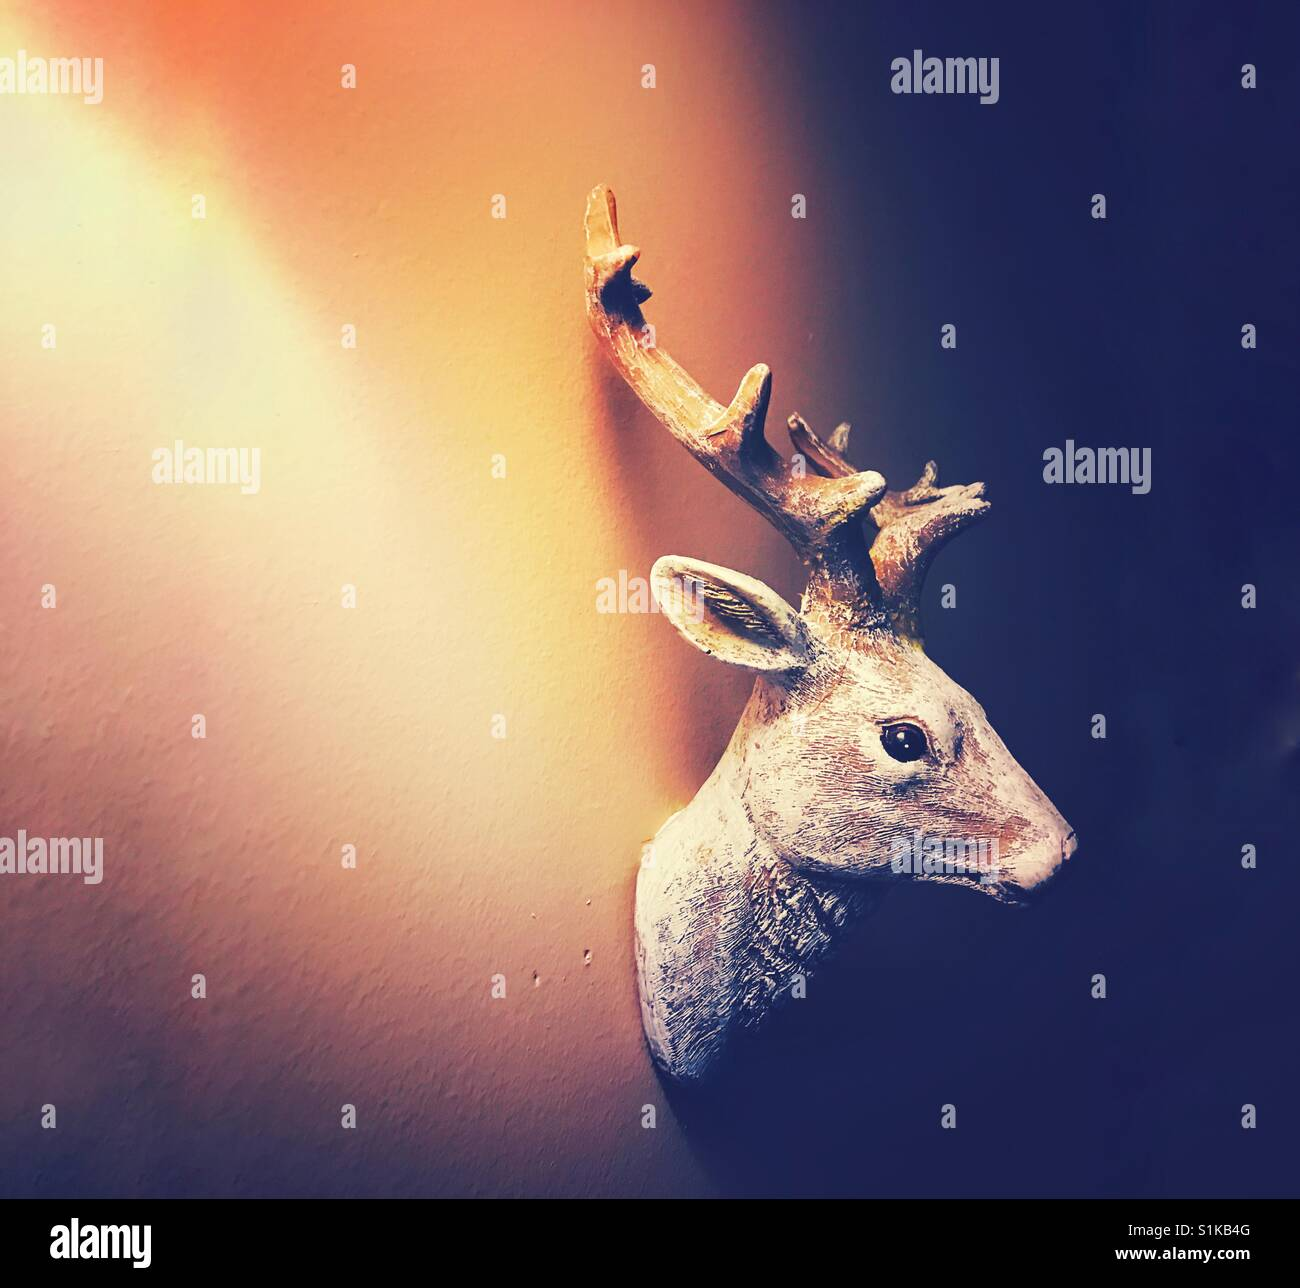 Stag Head Wall Stock Photos & Stag Head Wall Stock Images - Alamy